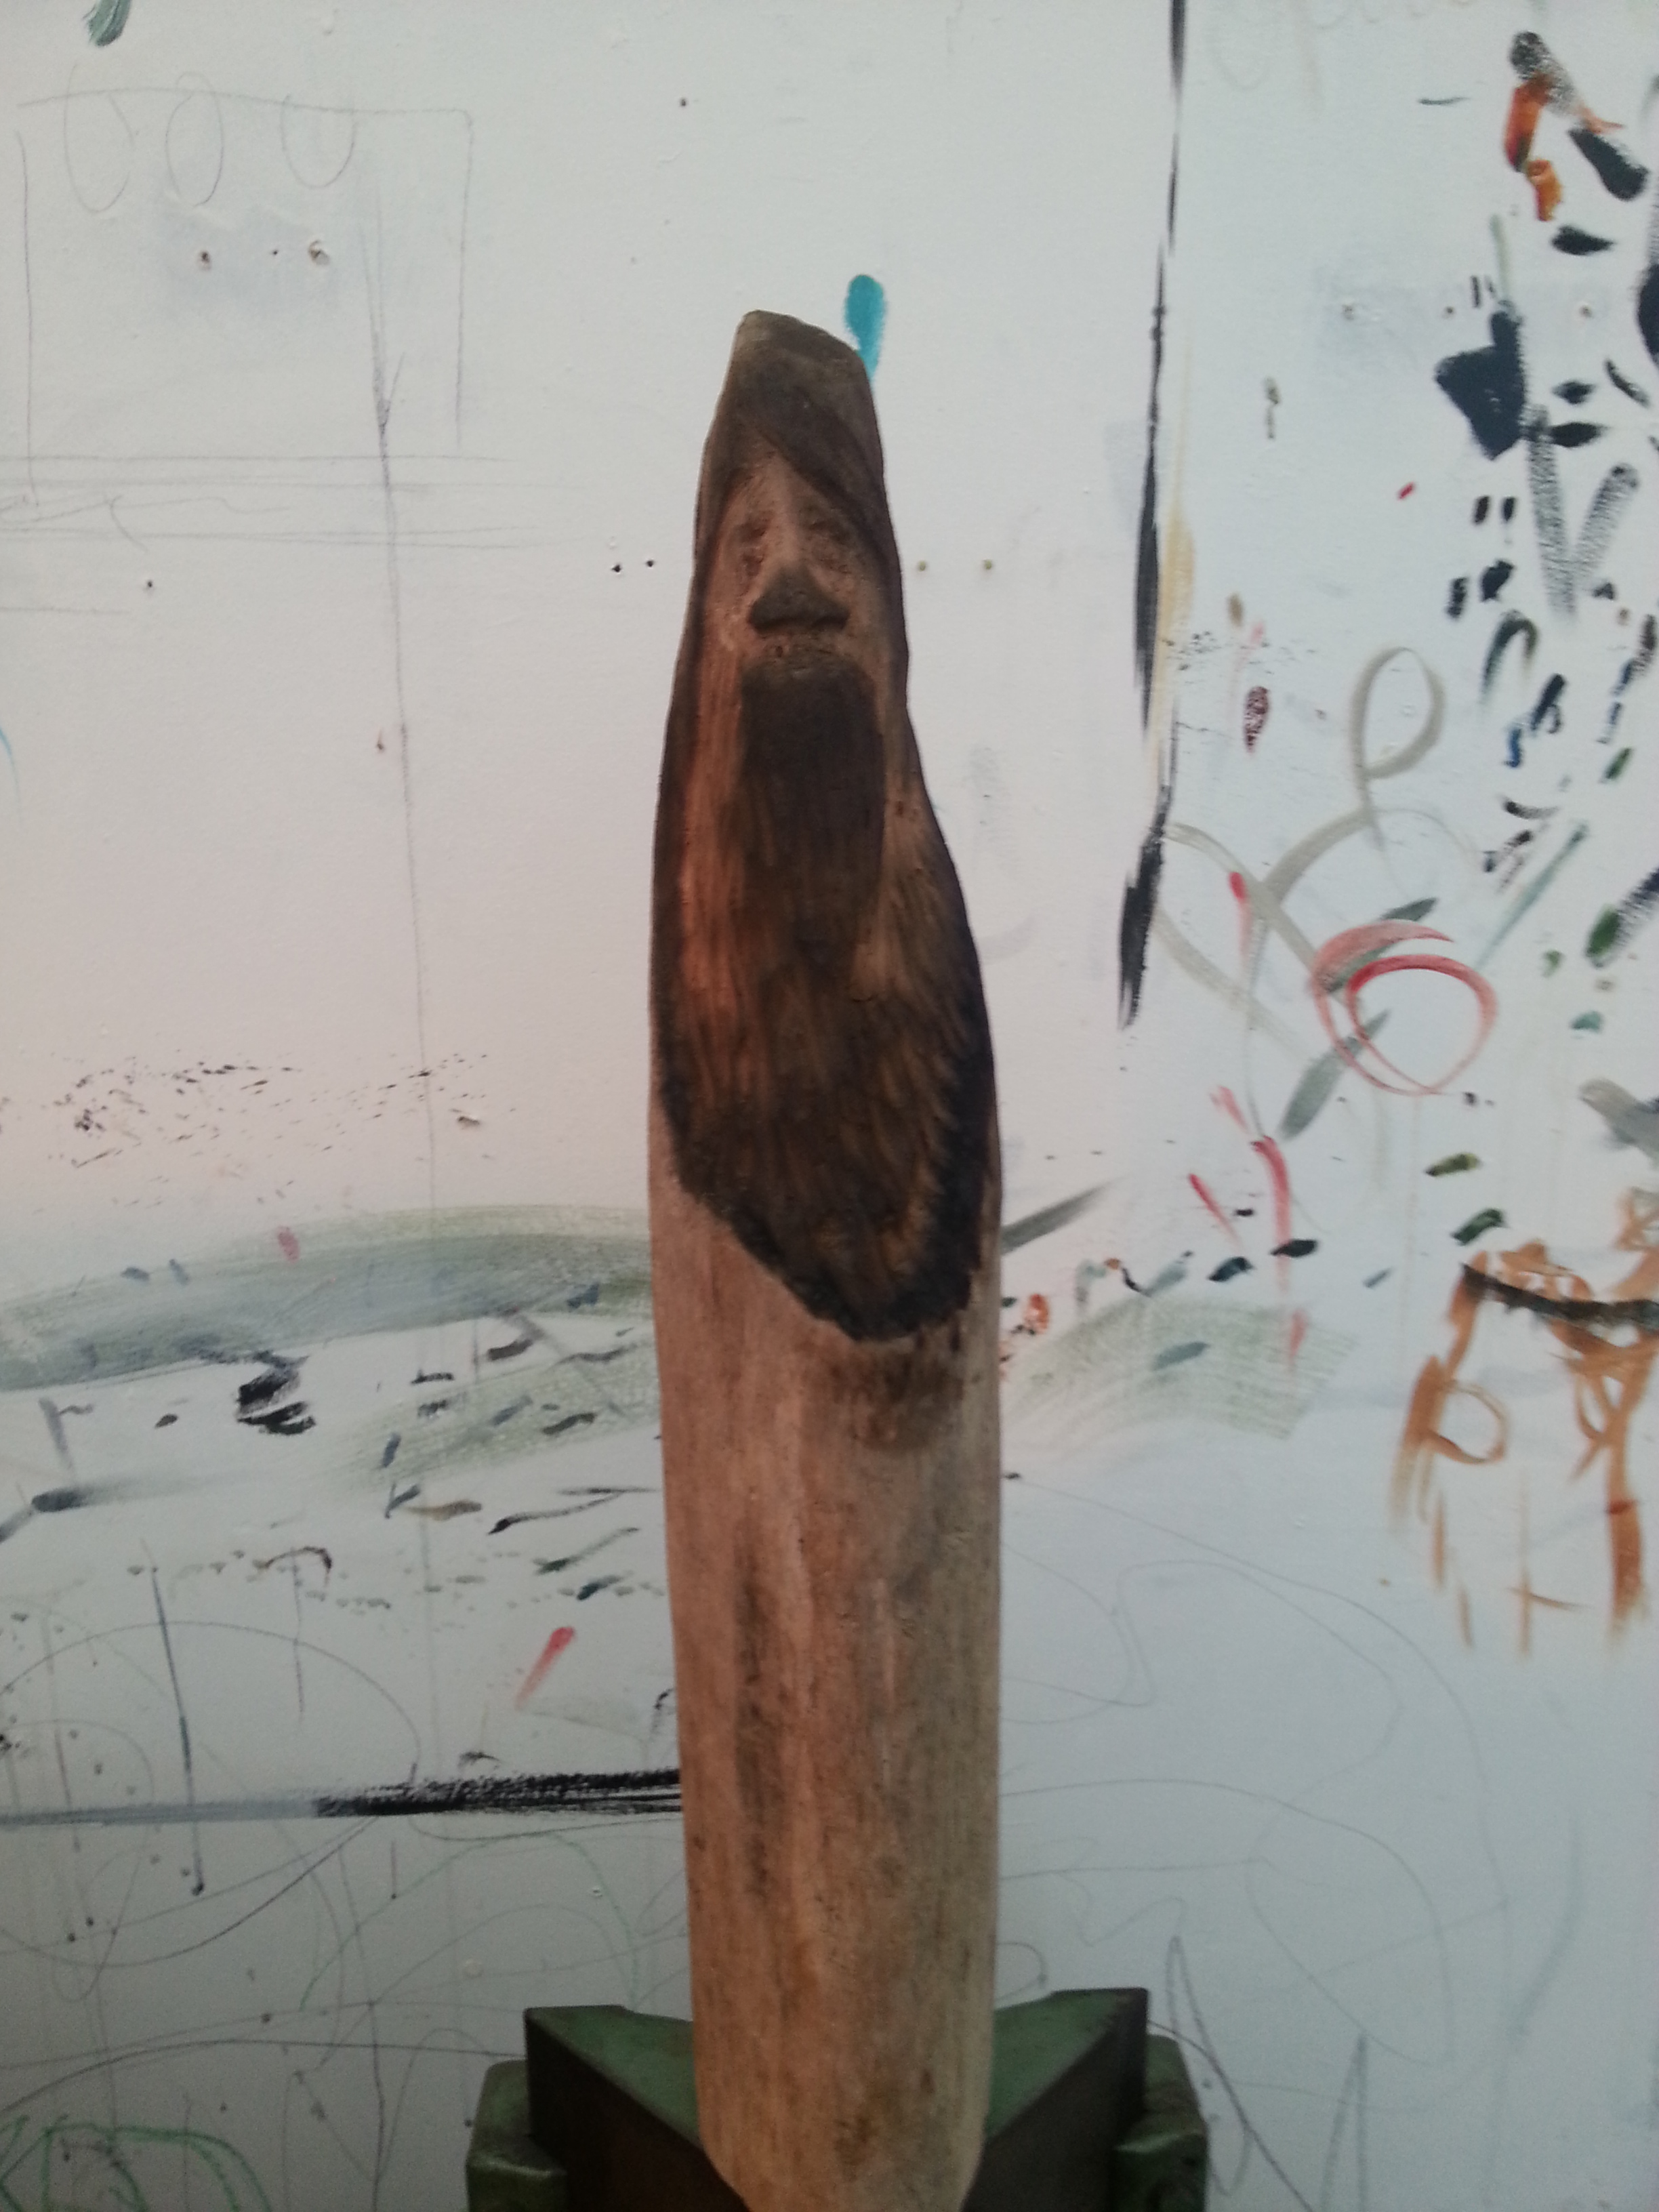 wood carving in progress...